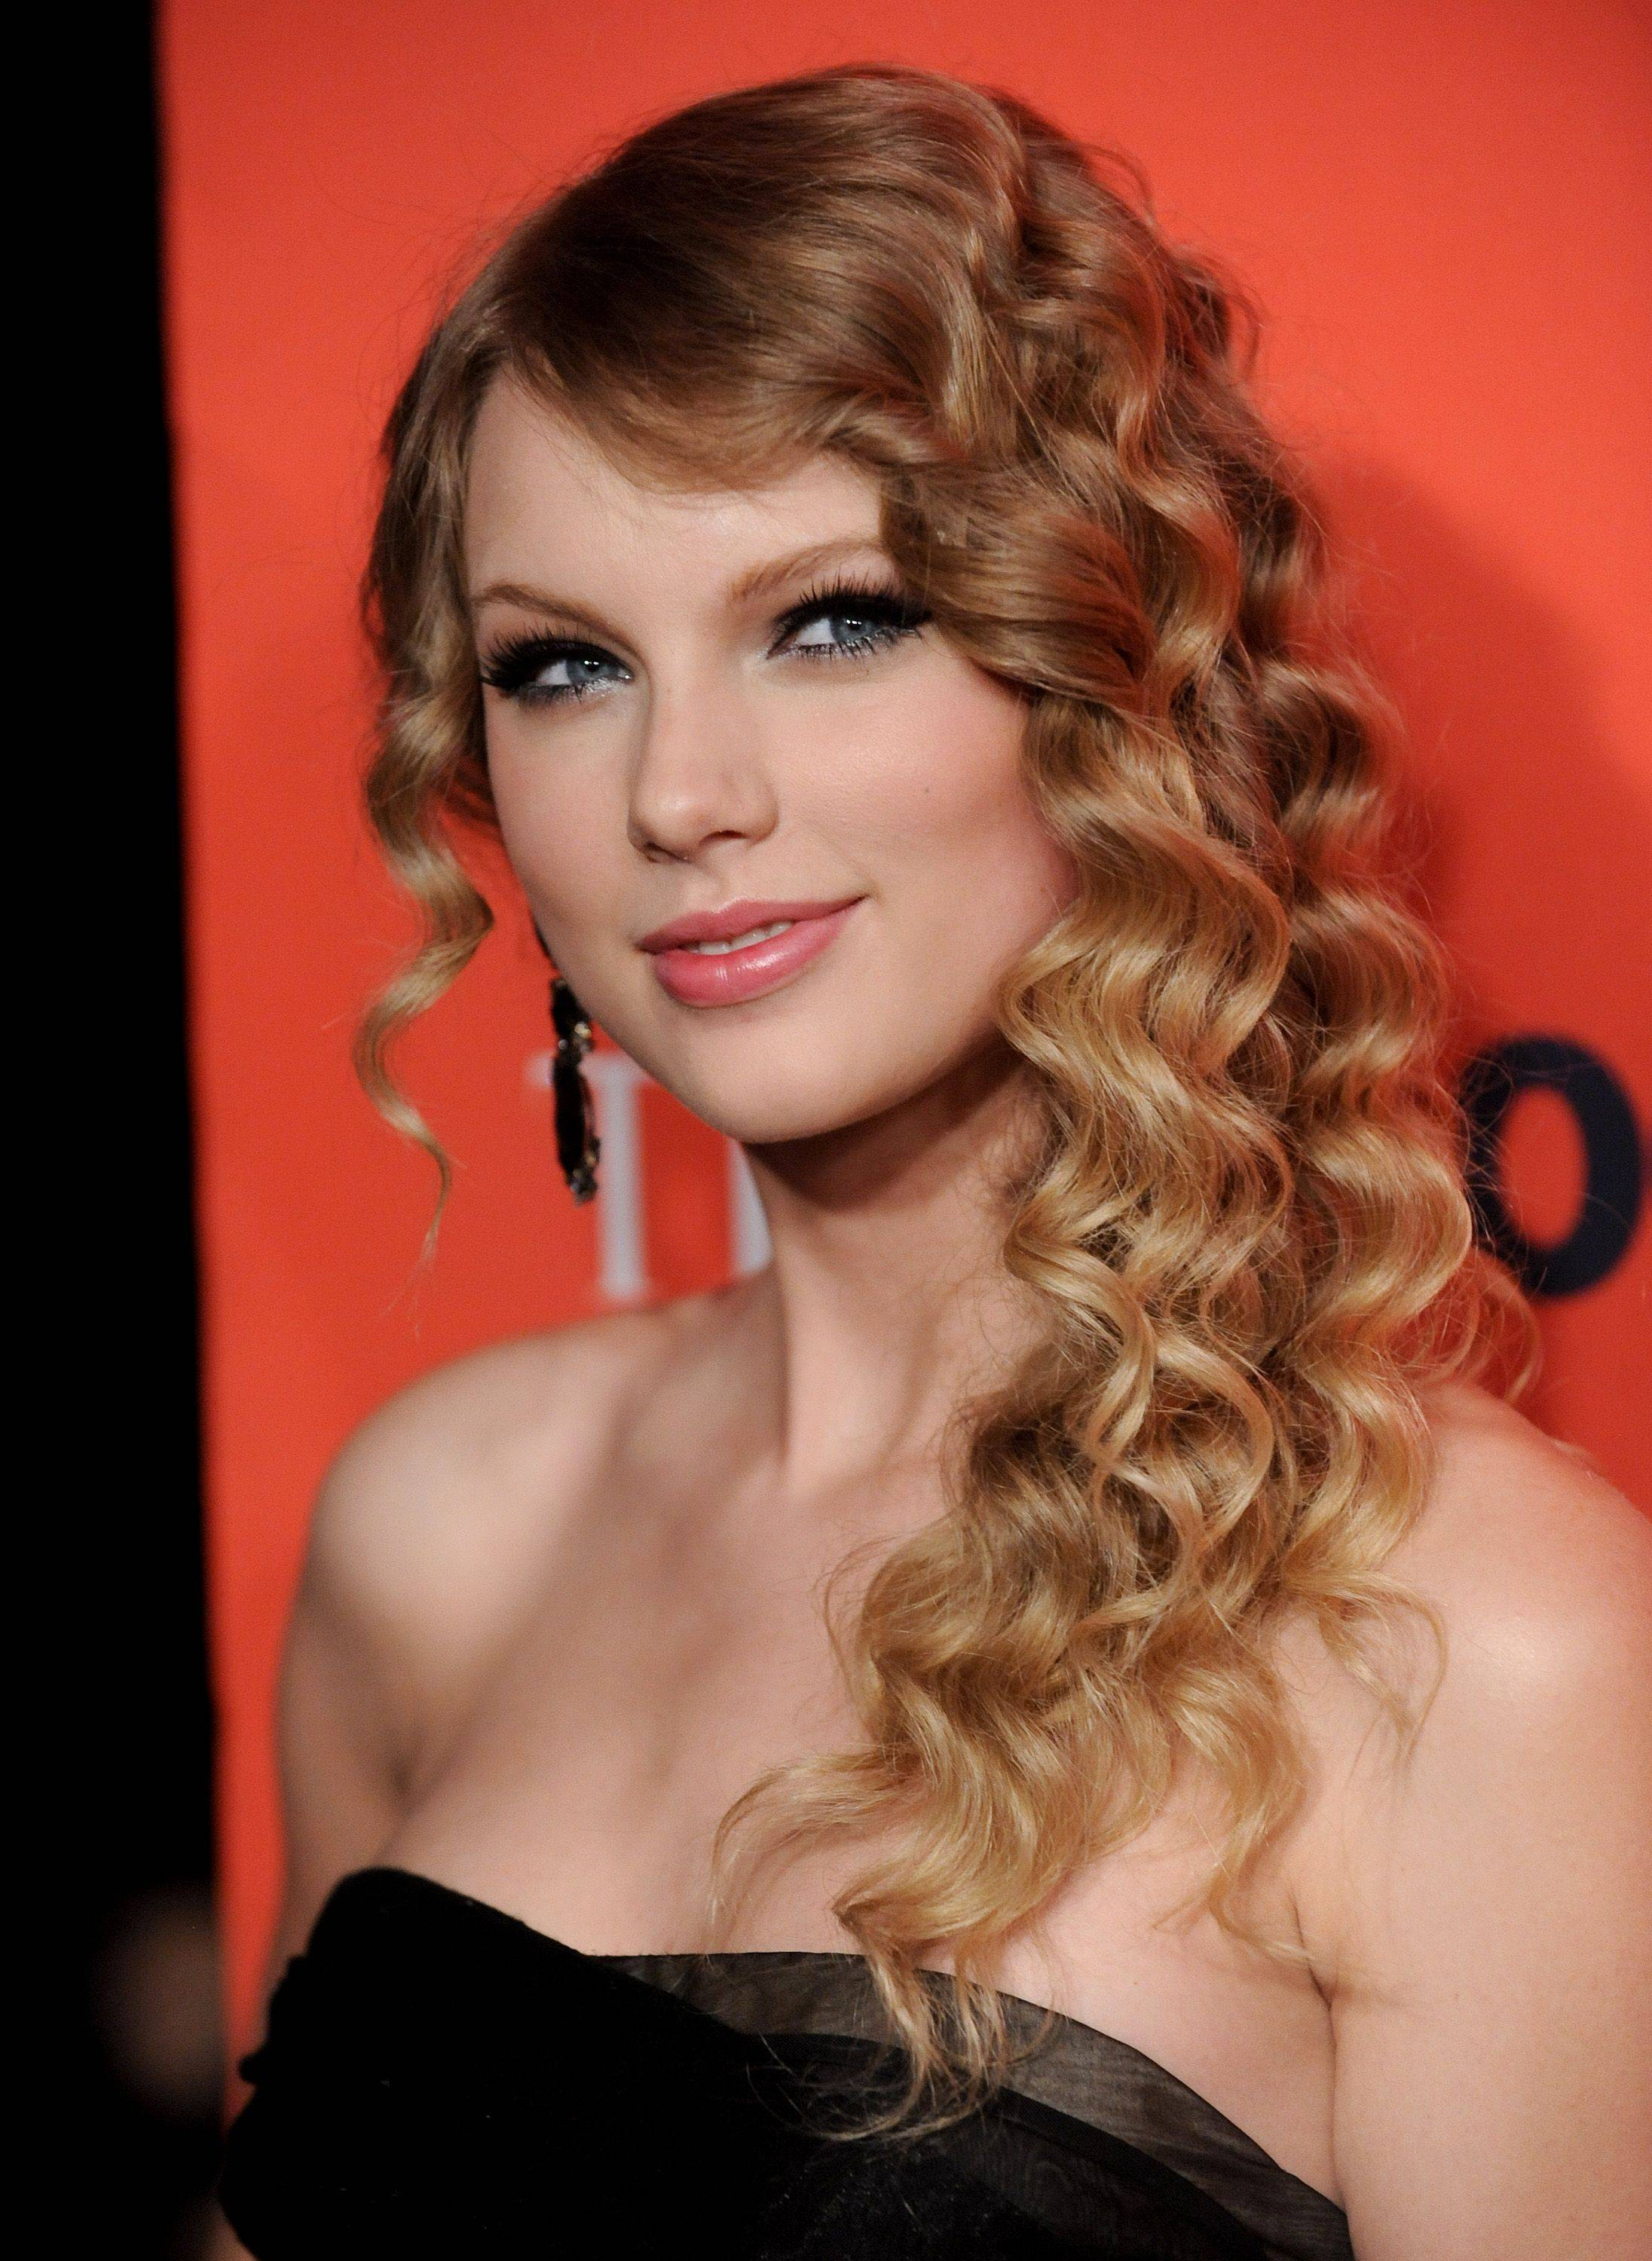 Singer Taylor Swift is set to return to Rosemont for two concerts in August at the Allstate Arena.